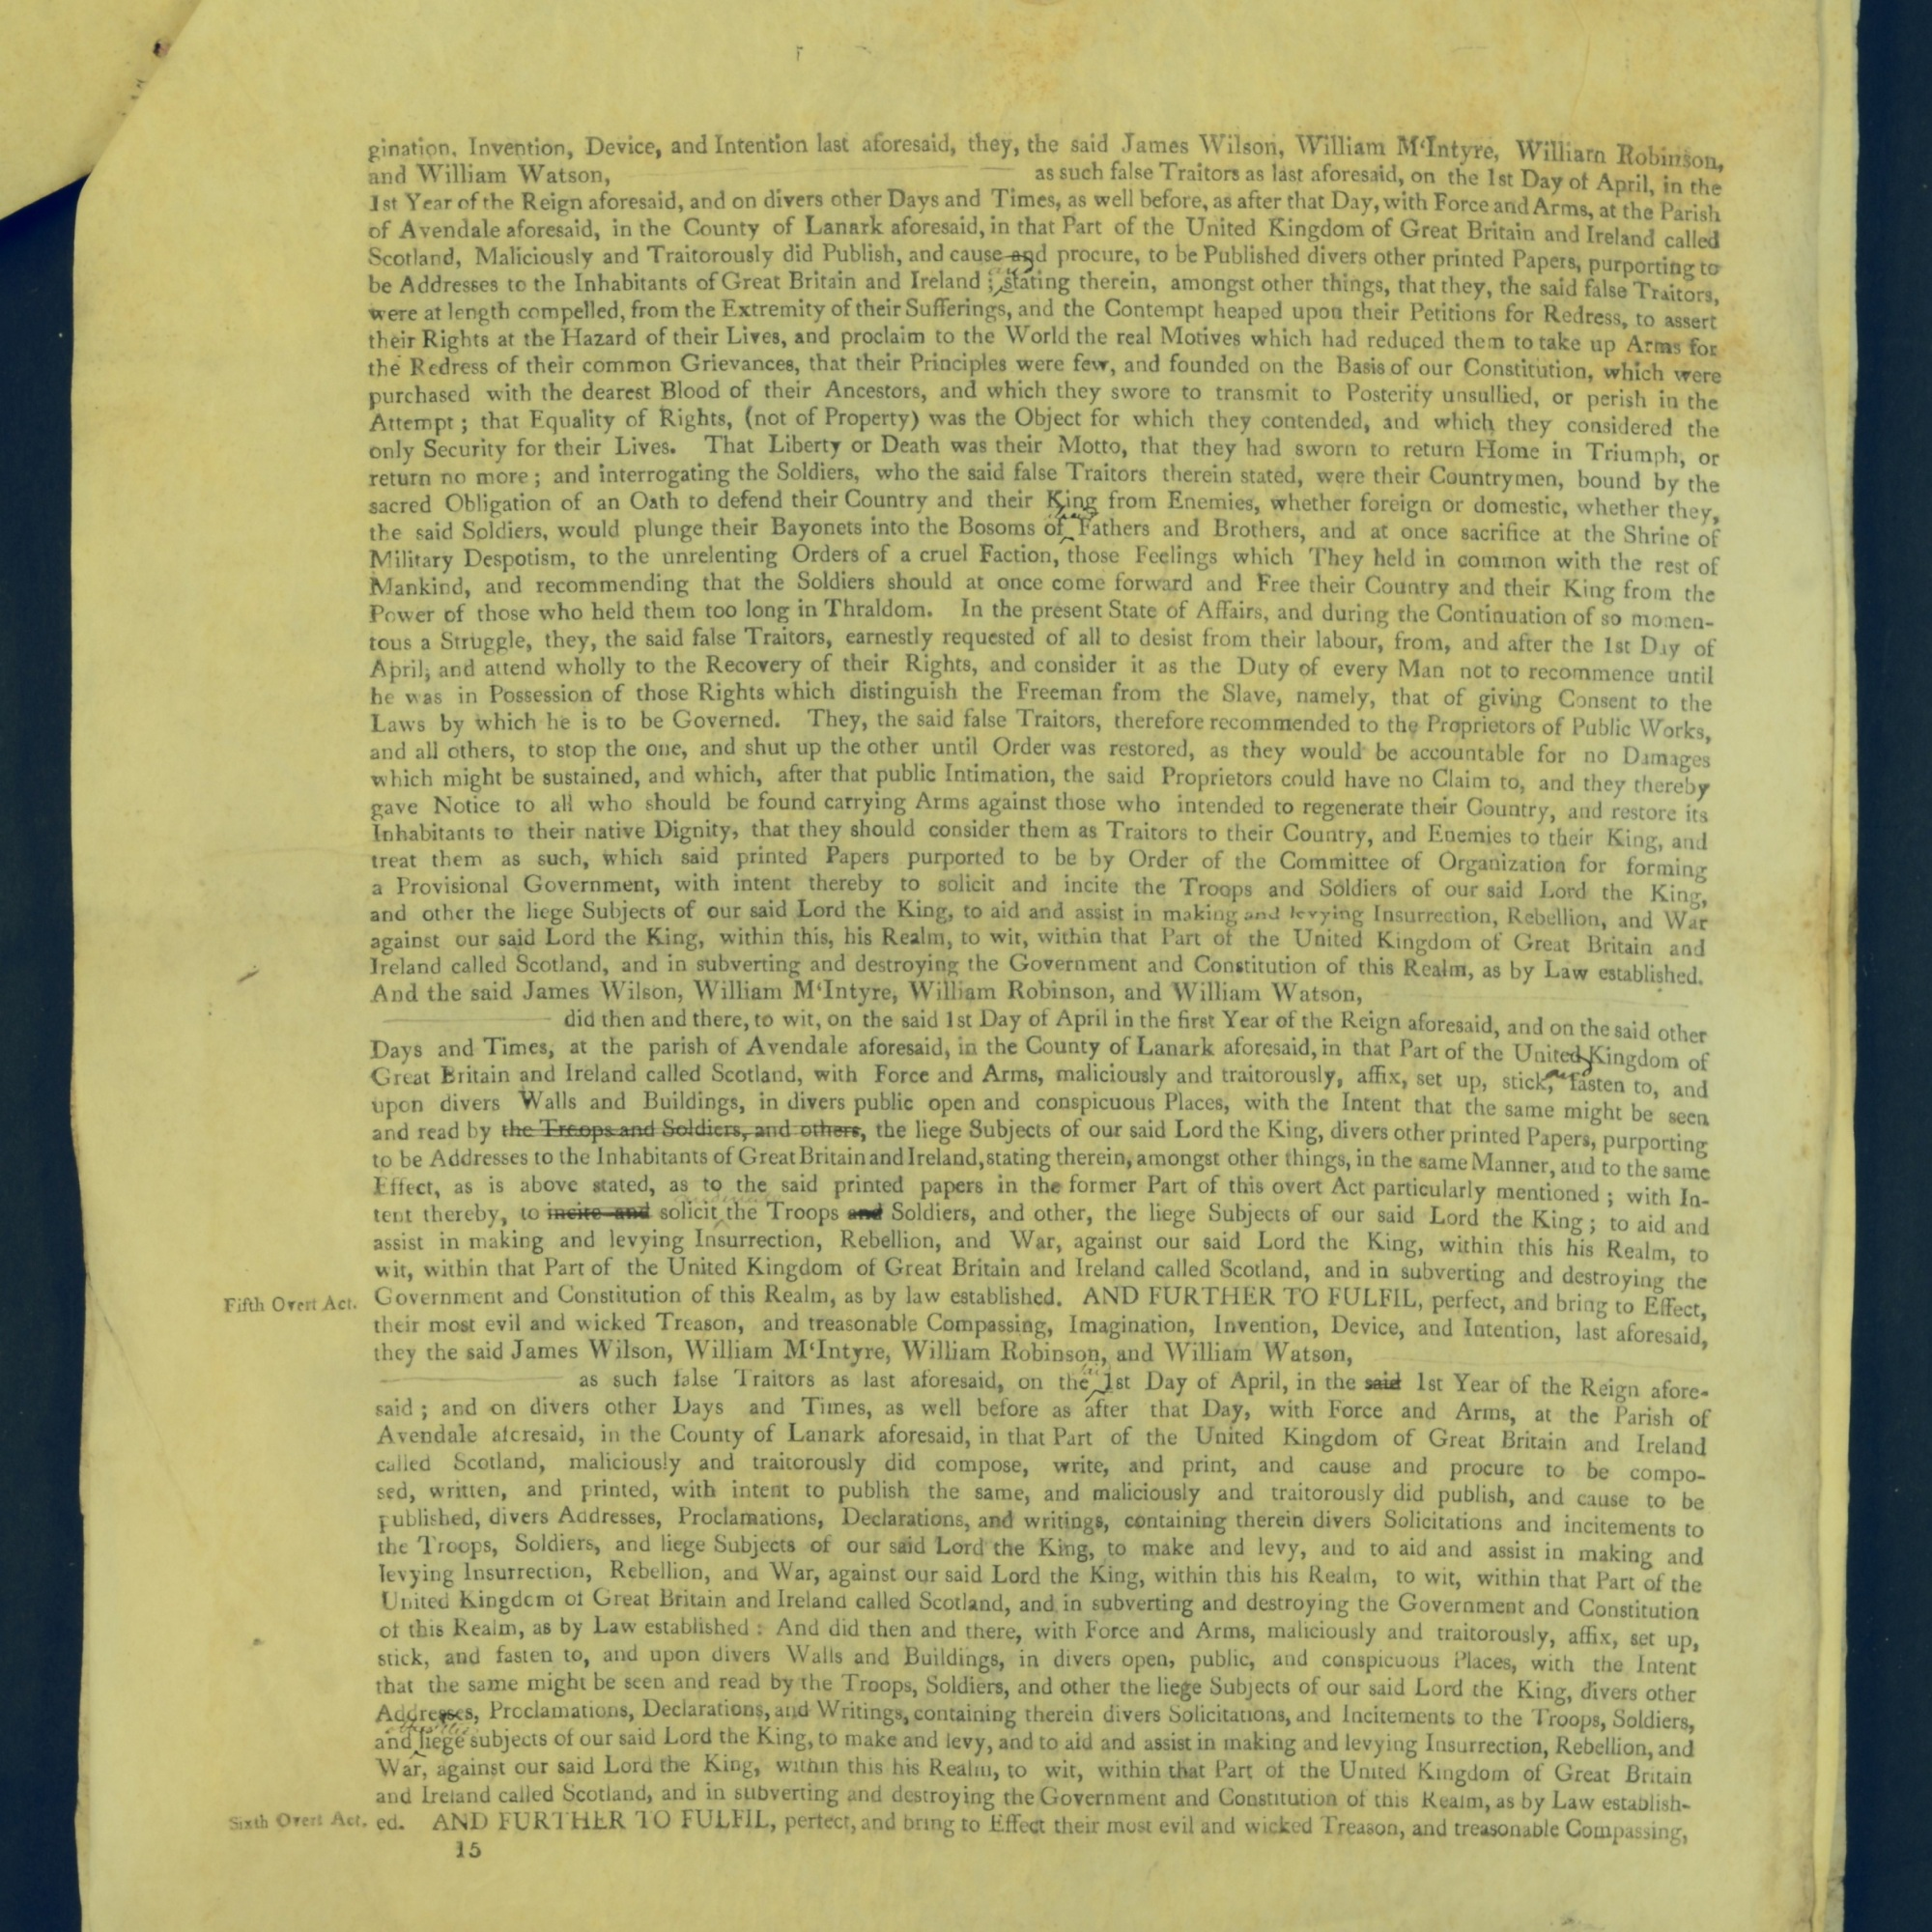 Treason Trials for the County of Lanark, the Strathaven Case. True bills found against four men, James Wilson, William McIntyre, William Robinson and William Watson. National Records of Scotland, Crown copyright, JC21/3/4 p15